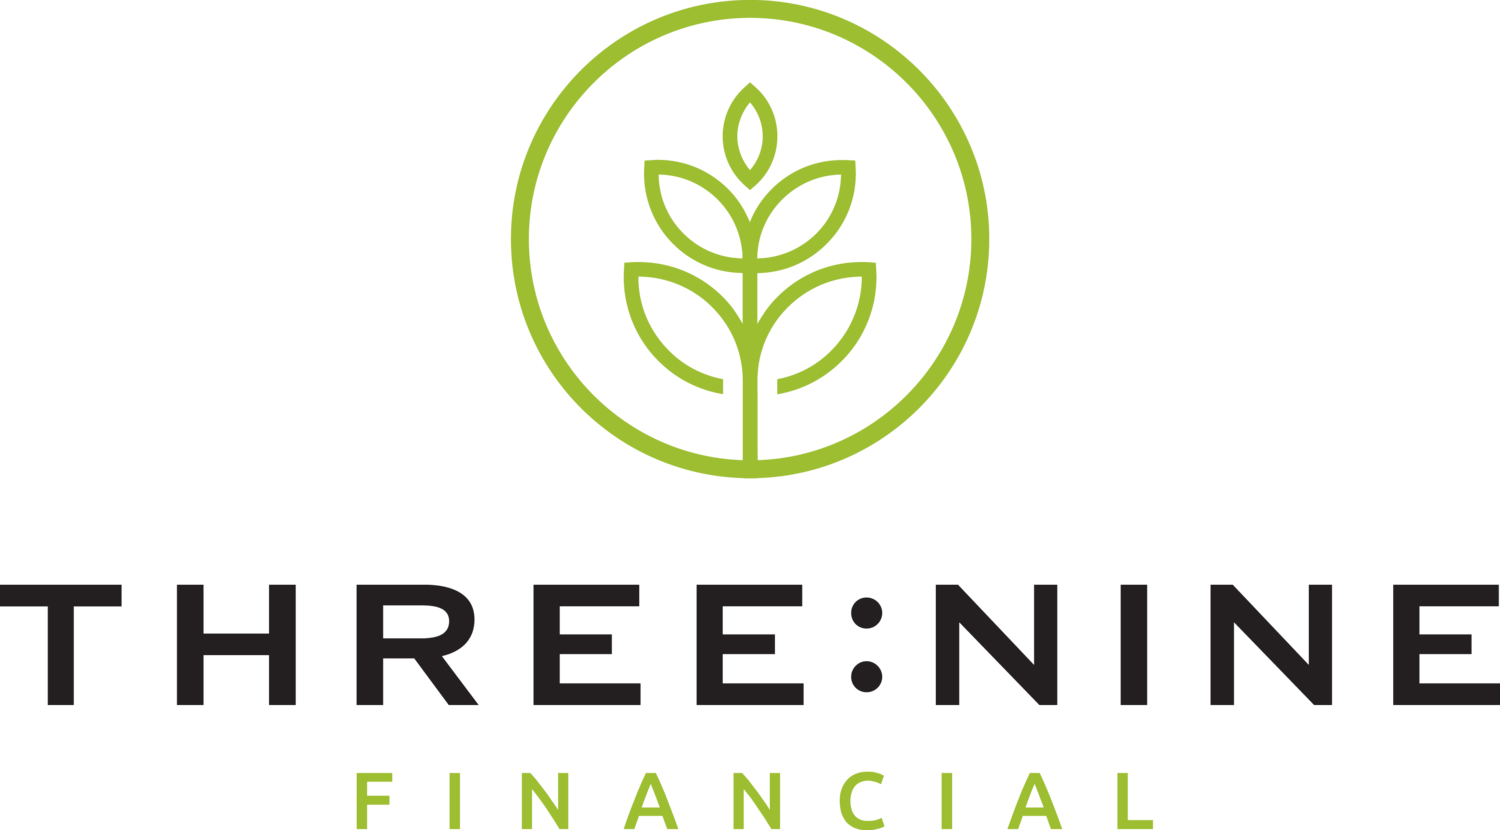 Three Nine Financial | Biblical Wealth Management